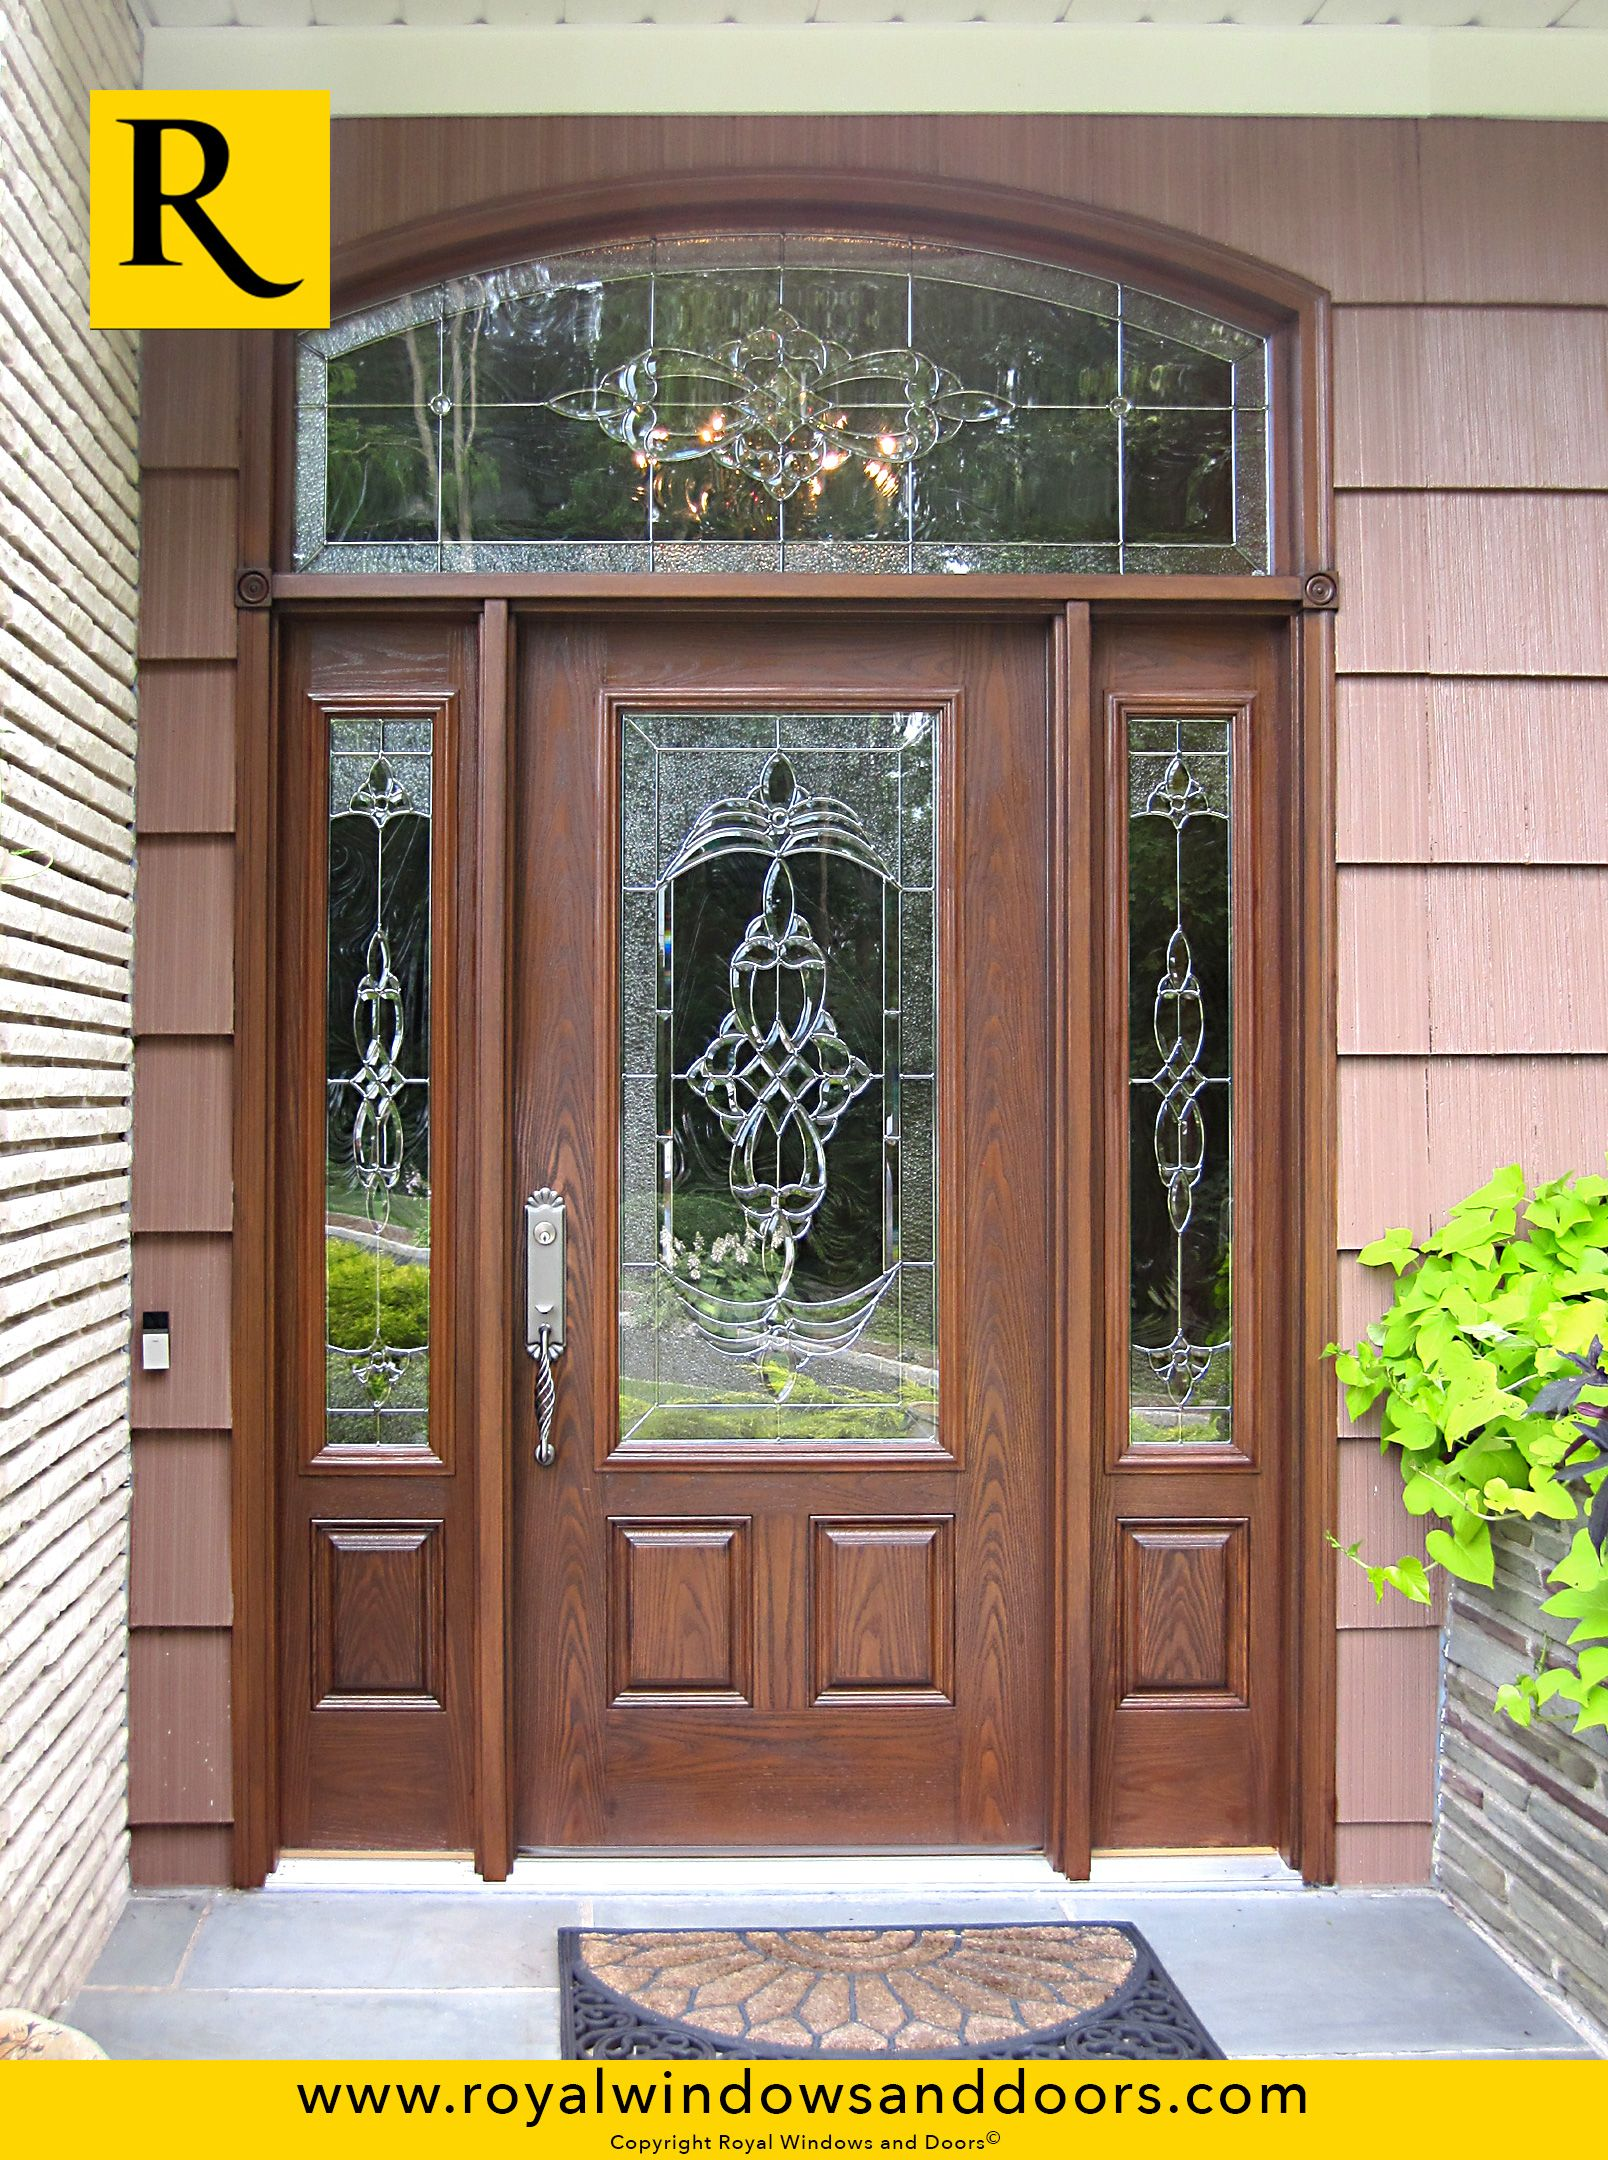 Single entry door wood finish two side lites transom for Single entry door with glass